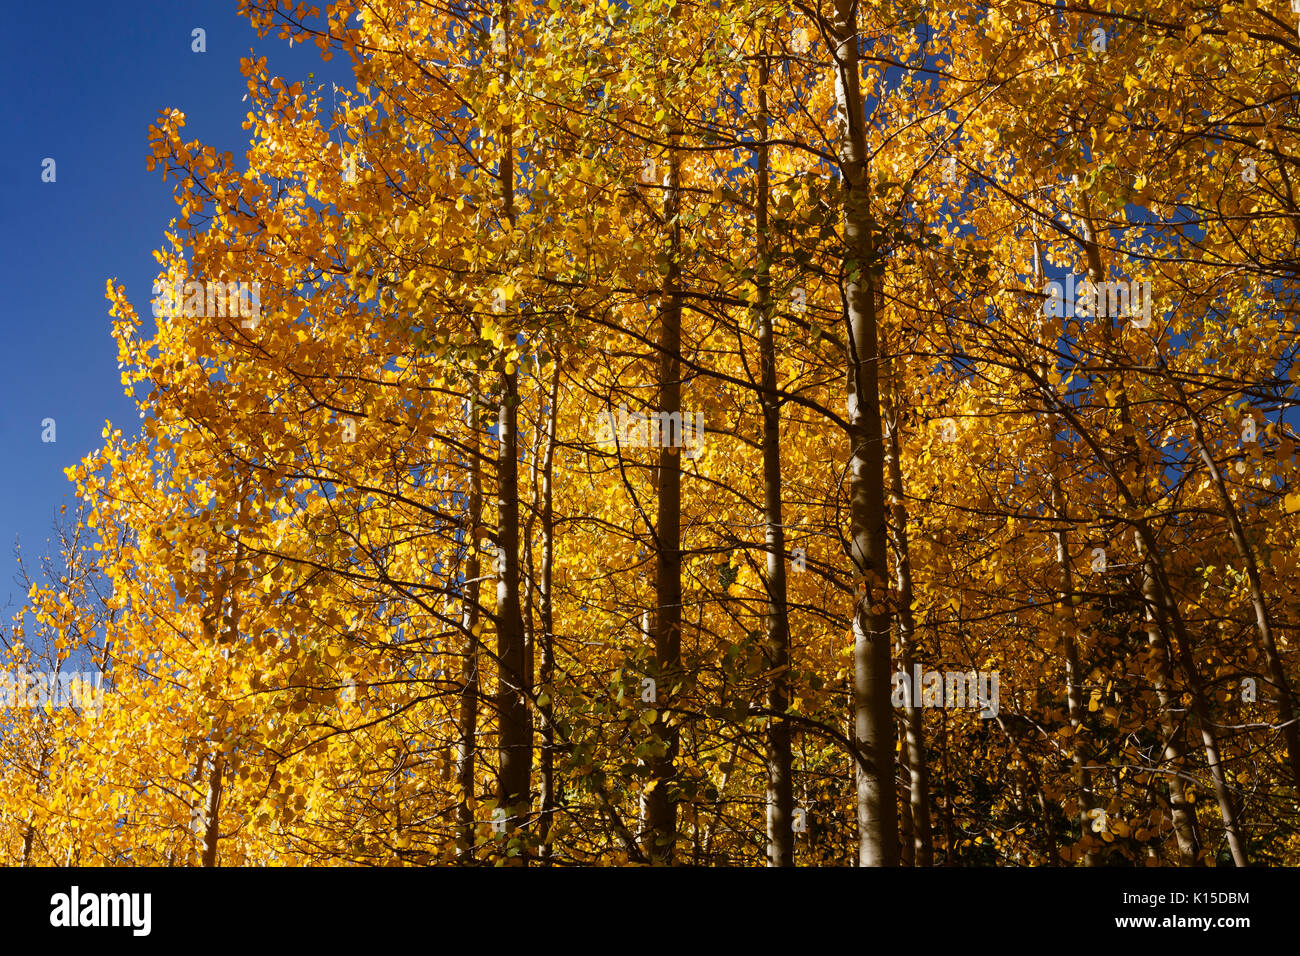 A stand of Aspen trees along Guanella Pass Road produce a fall color splash with their canopy.  Georgetown, Colorado. - Stock Image